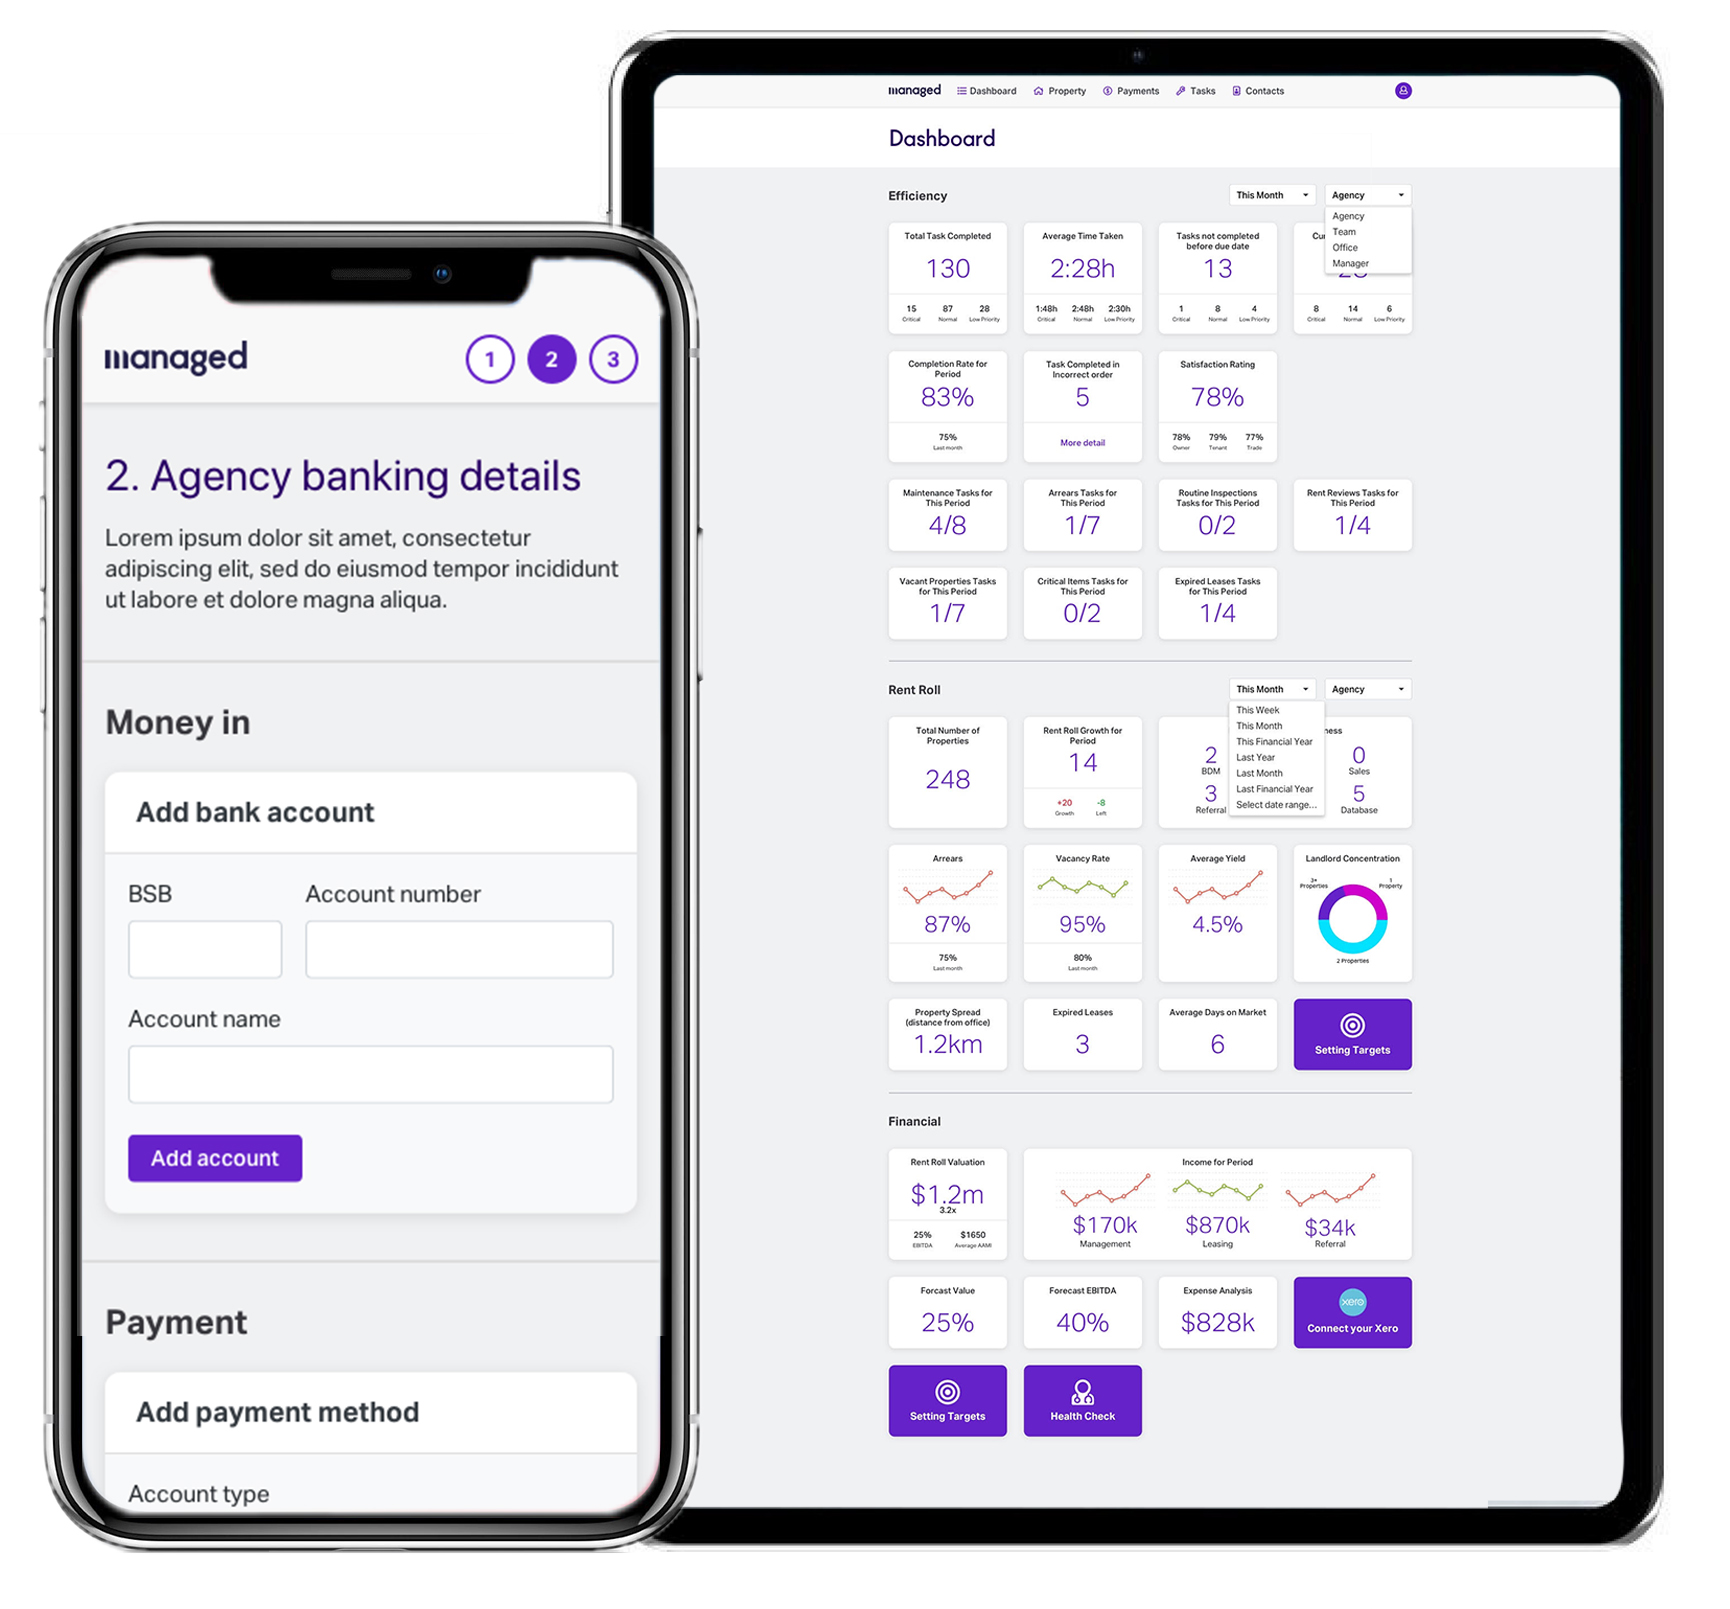 For Agencies - Understand the business. Next level control, insights and performance from one simple dashboard that will drive efficiencies and growth.